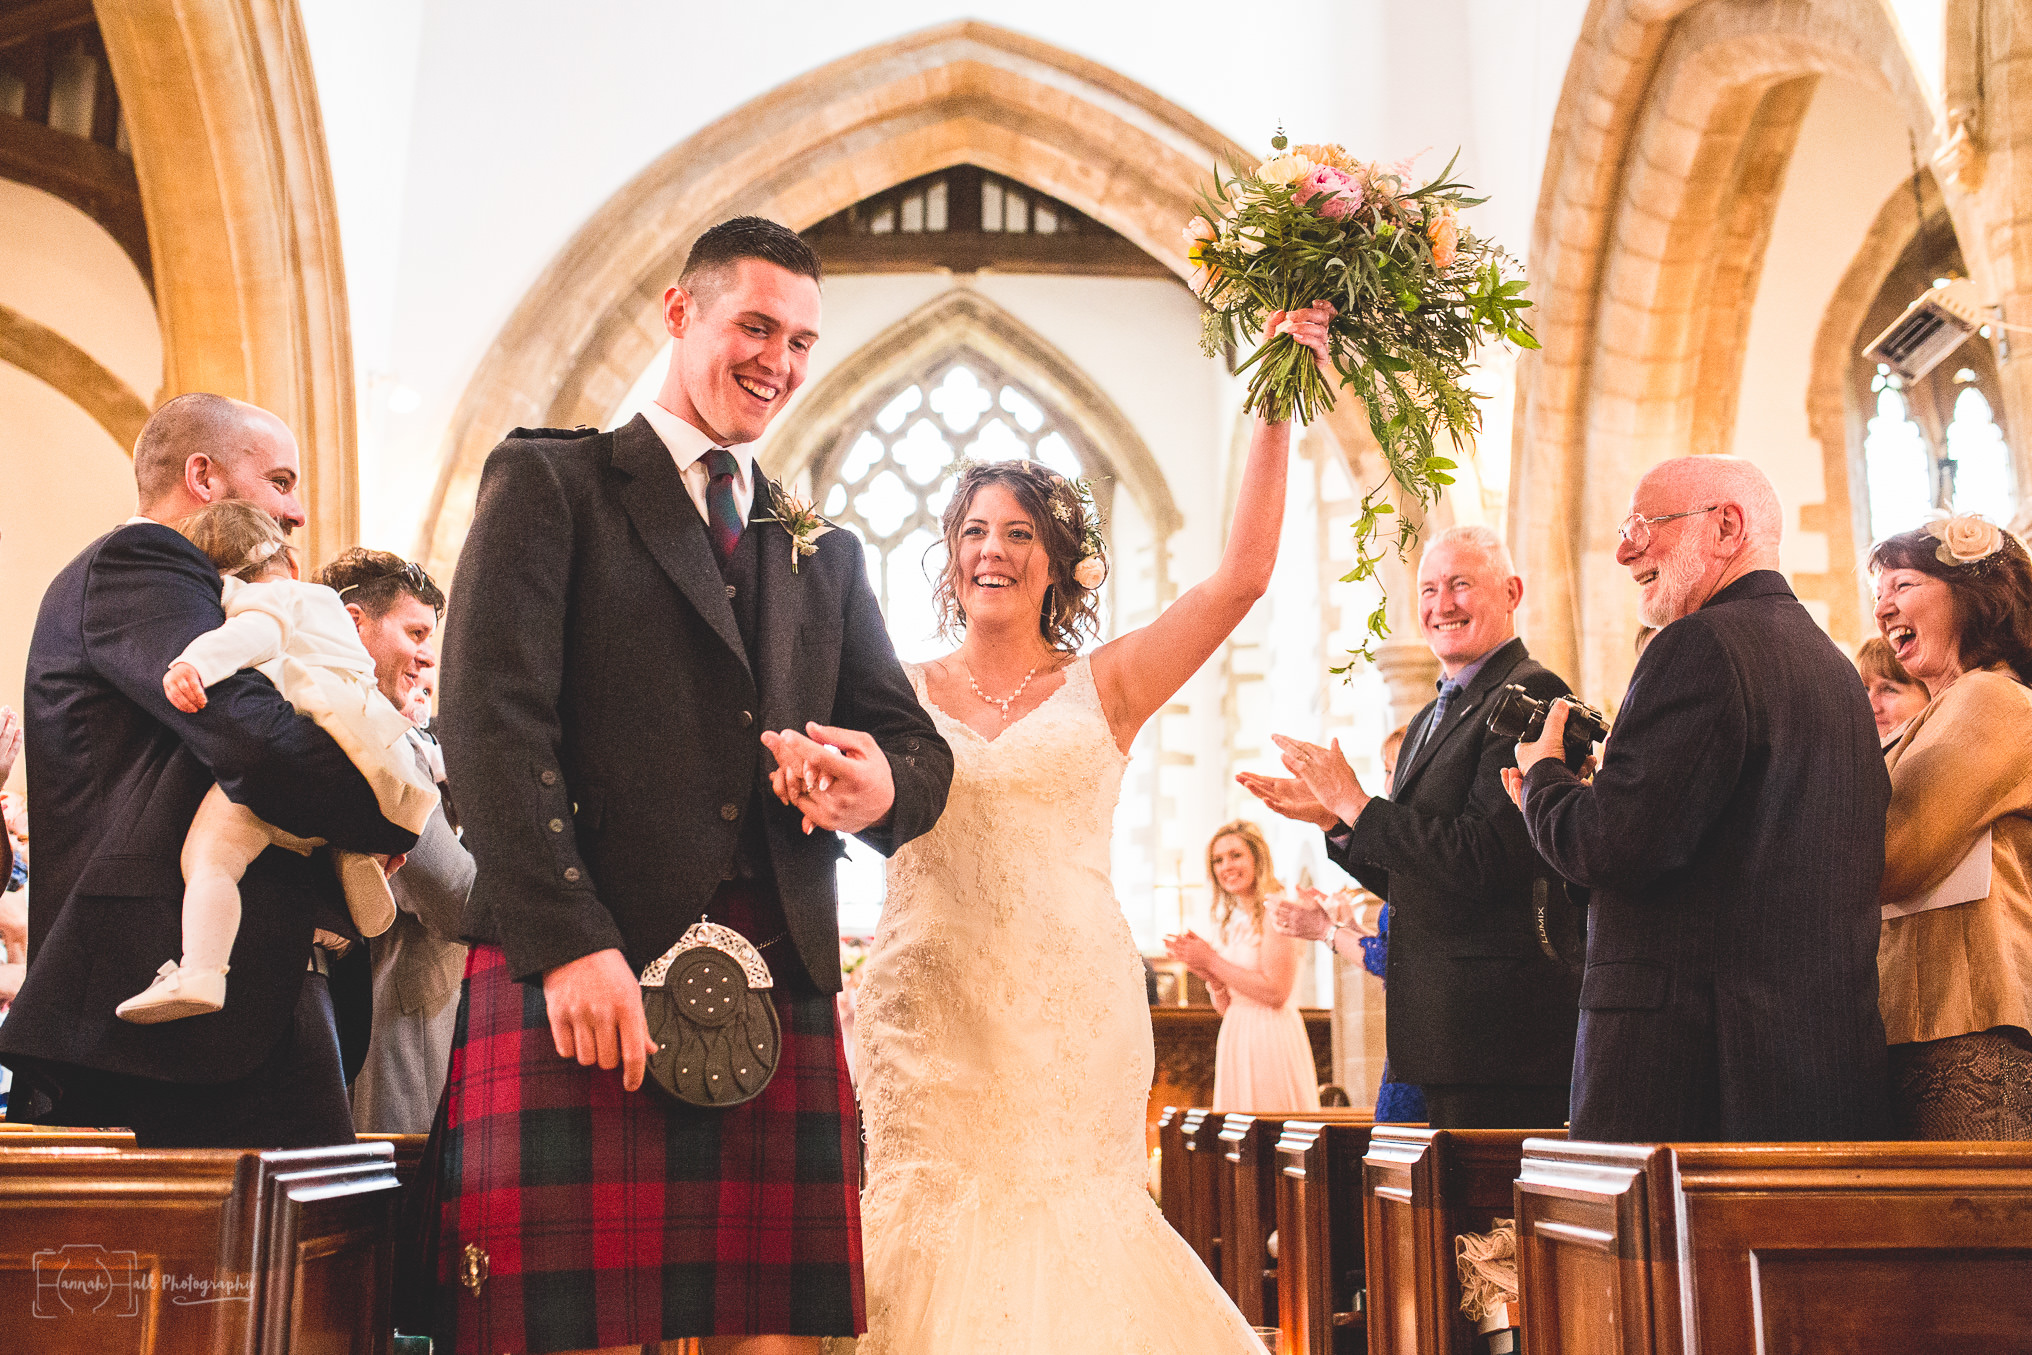 HHP-kilts-ceilidh-floral-wedding-27